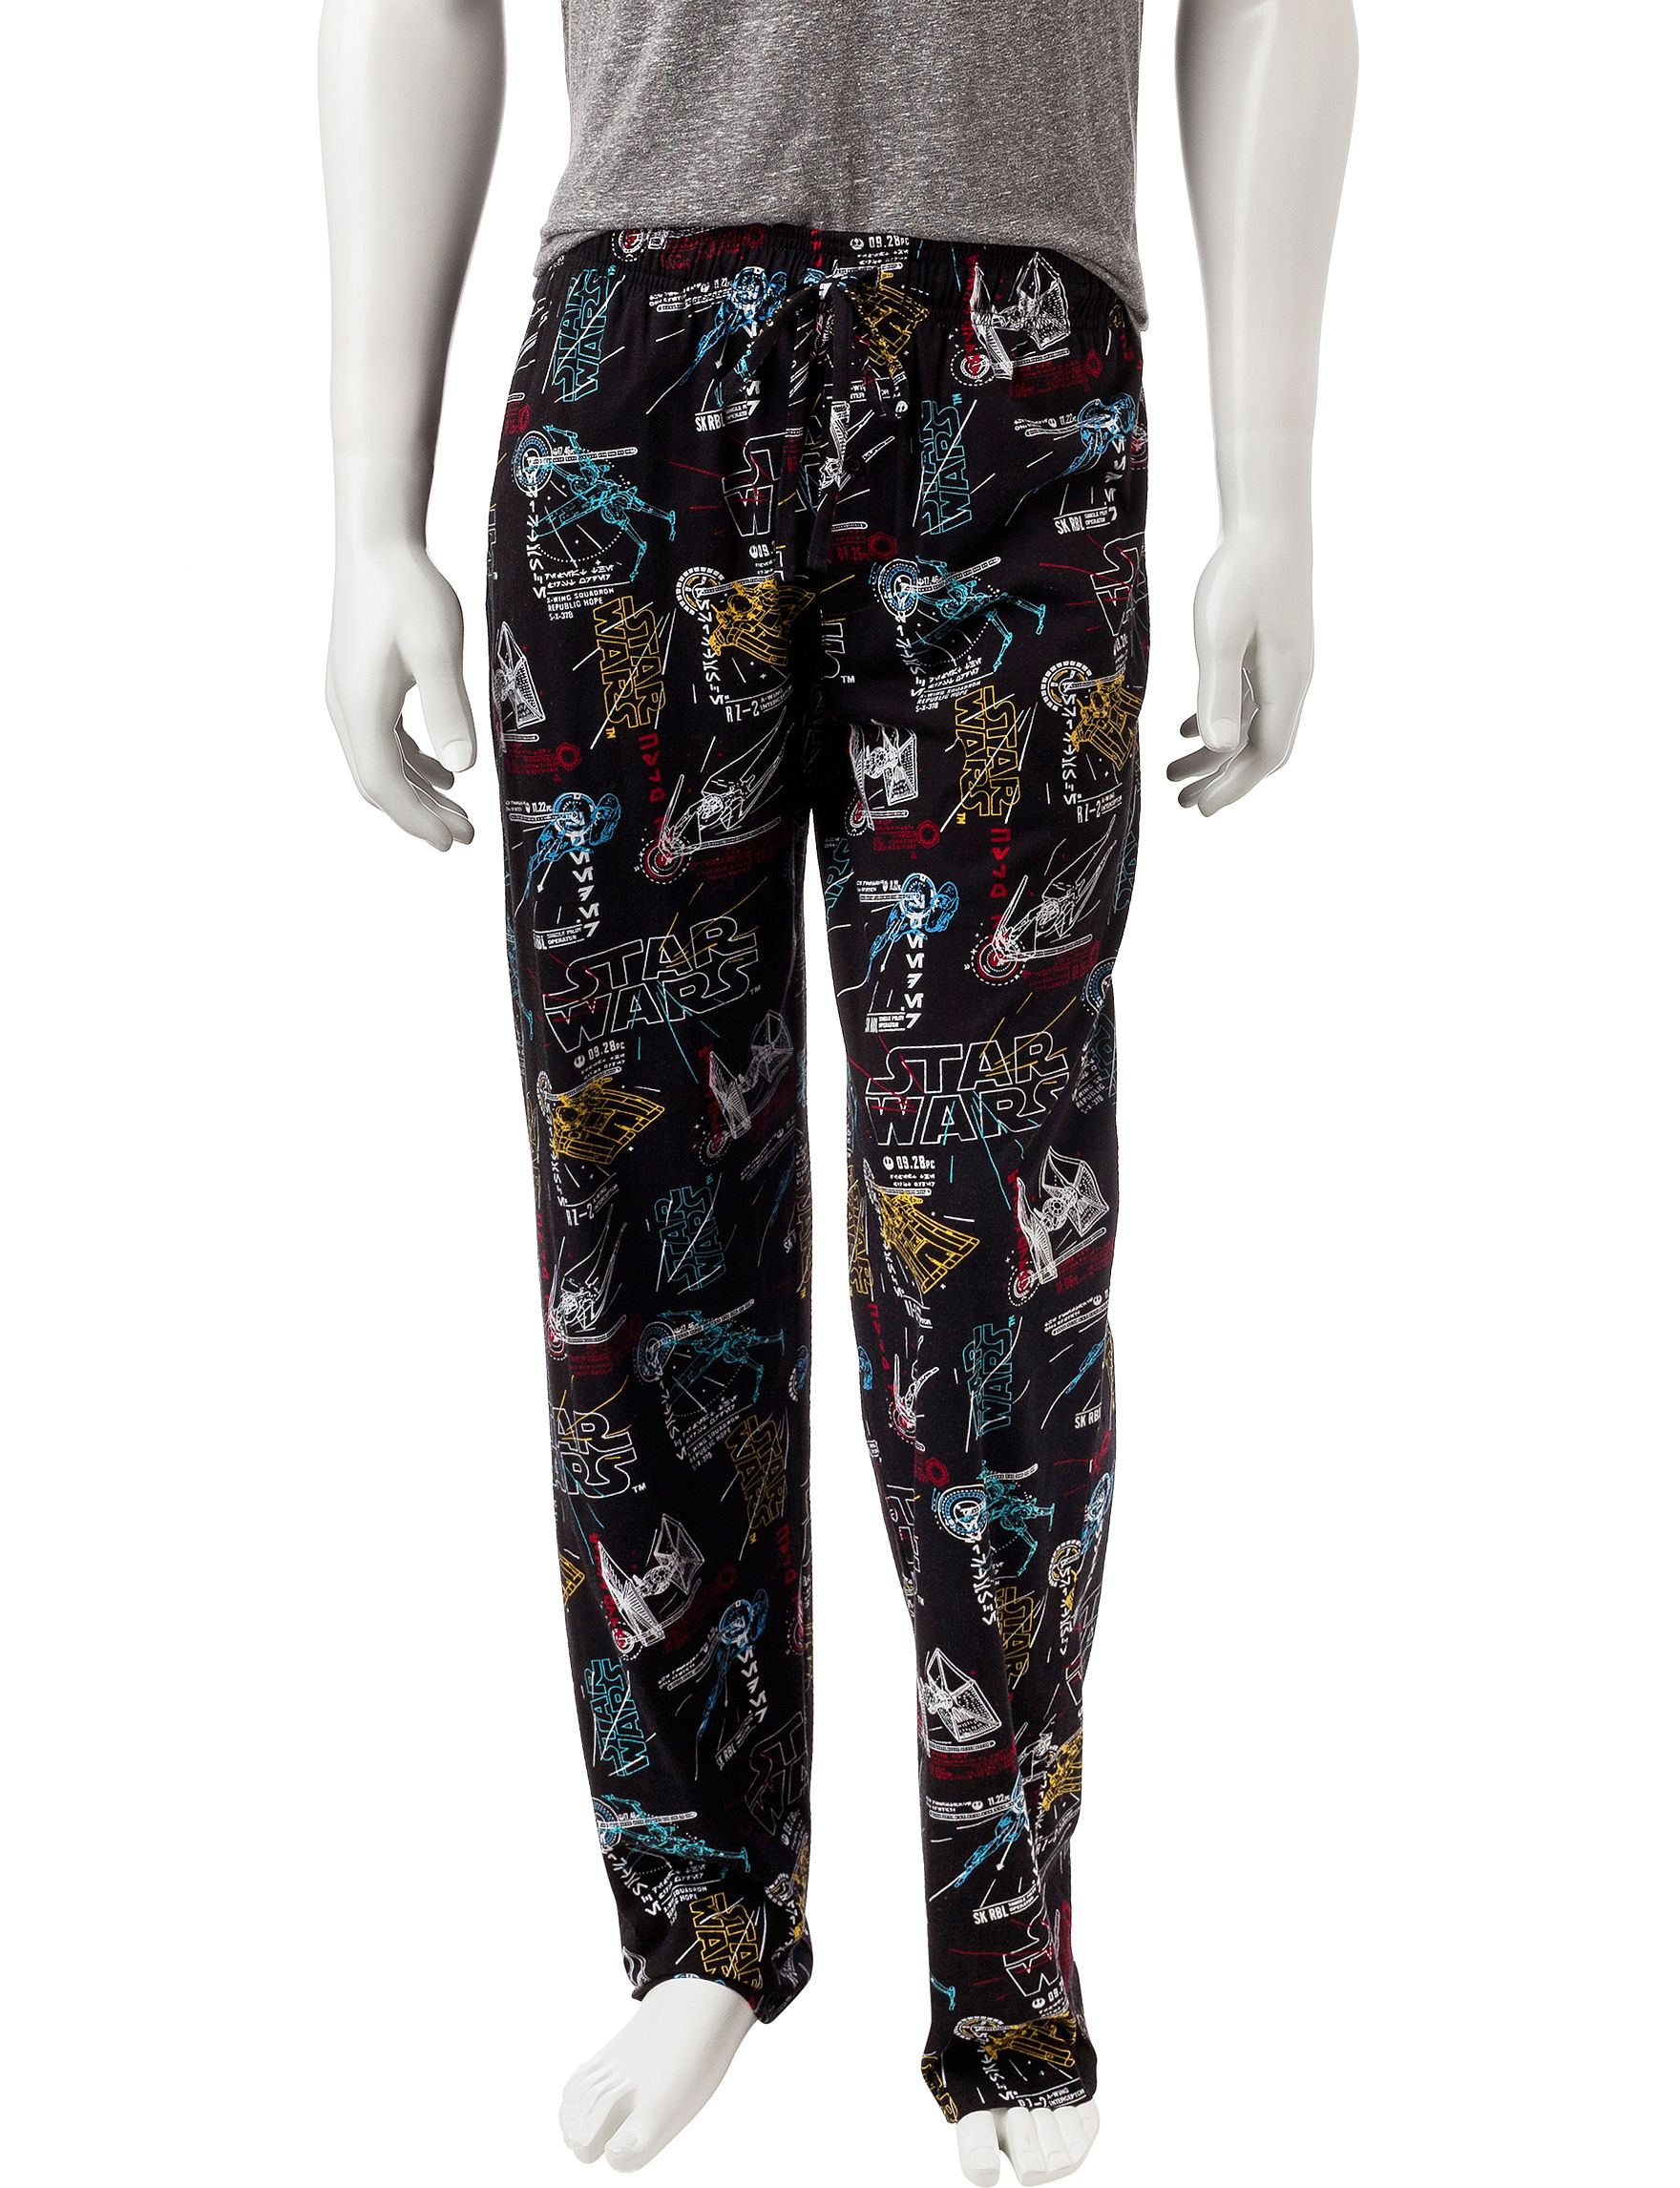 Licensed Black Pajama Bottoms